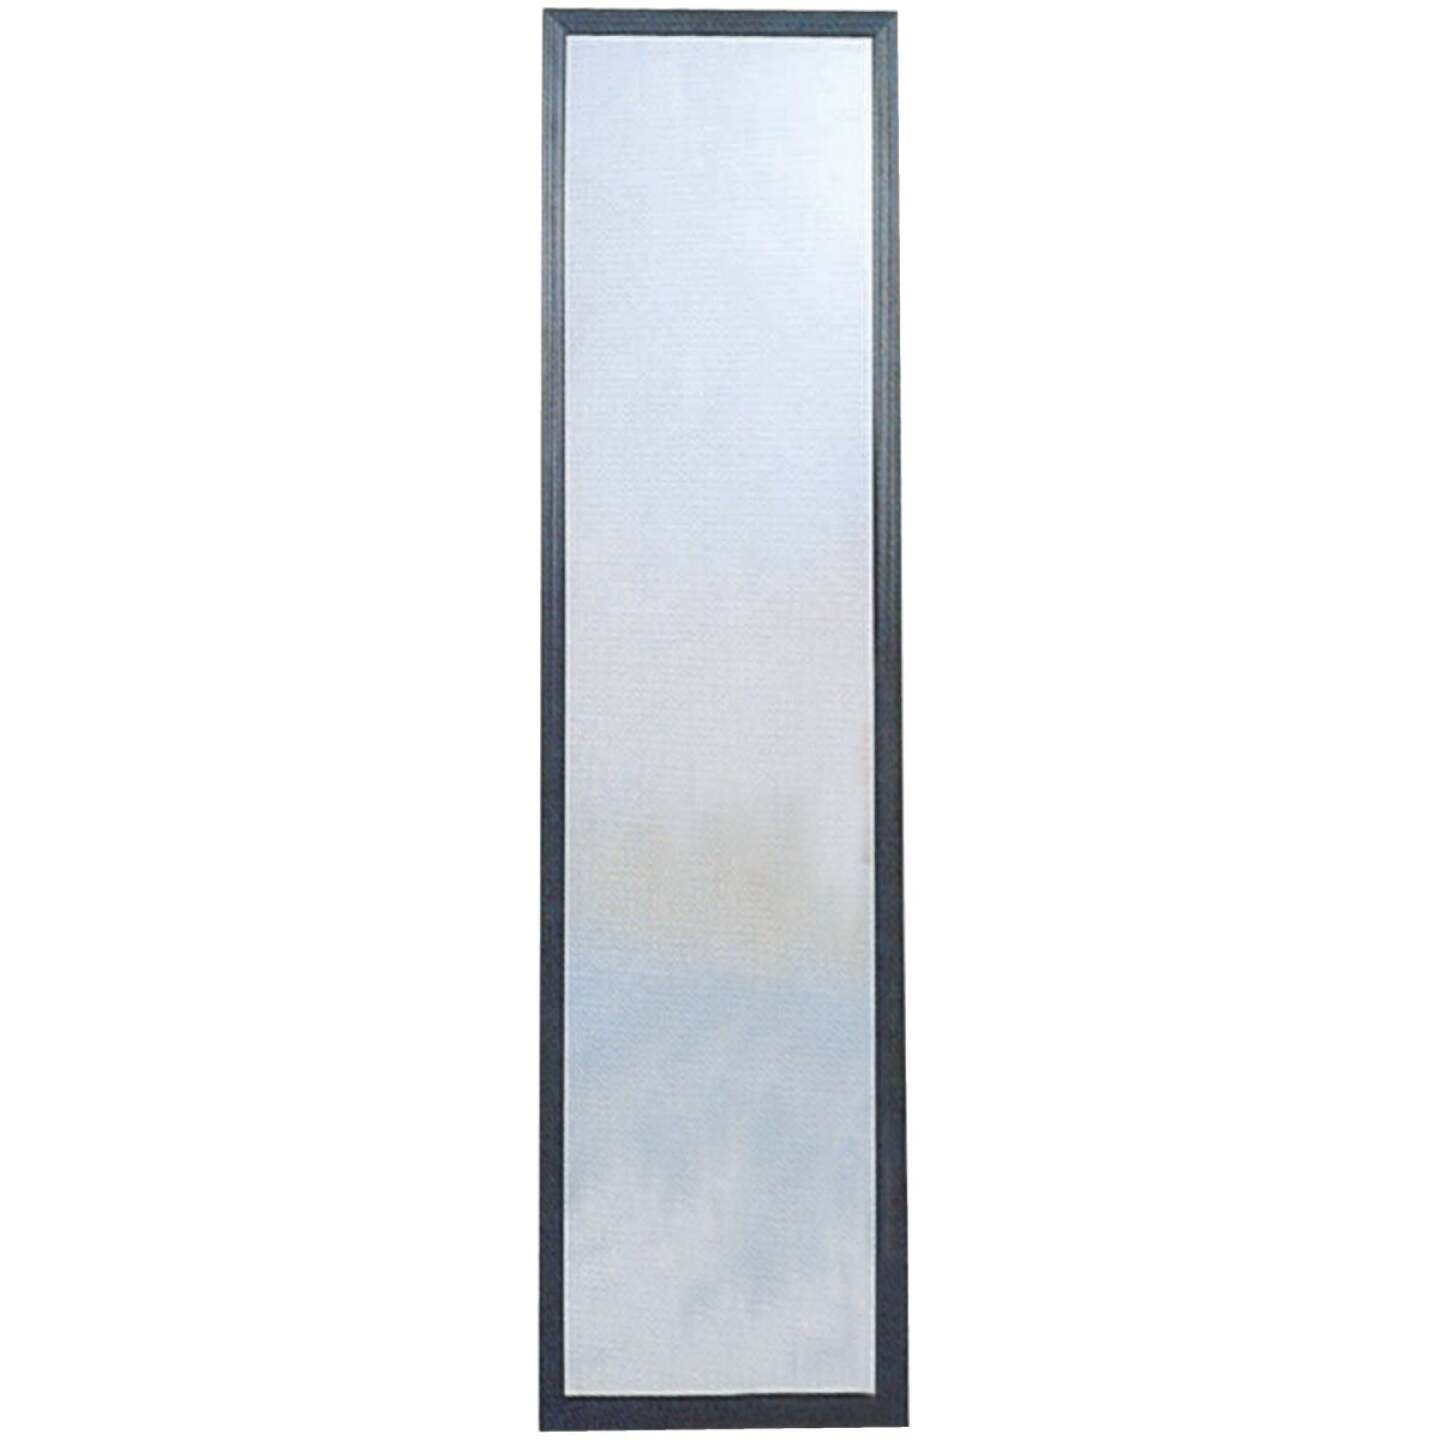 Home Decor Innovations Suave 13 In. x 49 In. Black Plastic Door Mirror Image 1